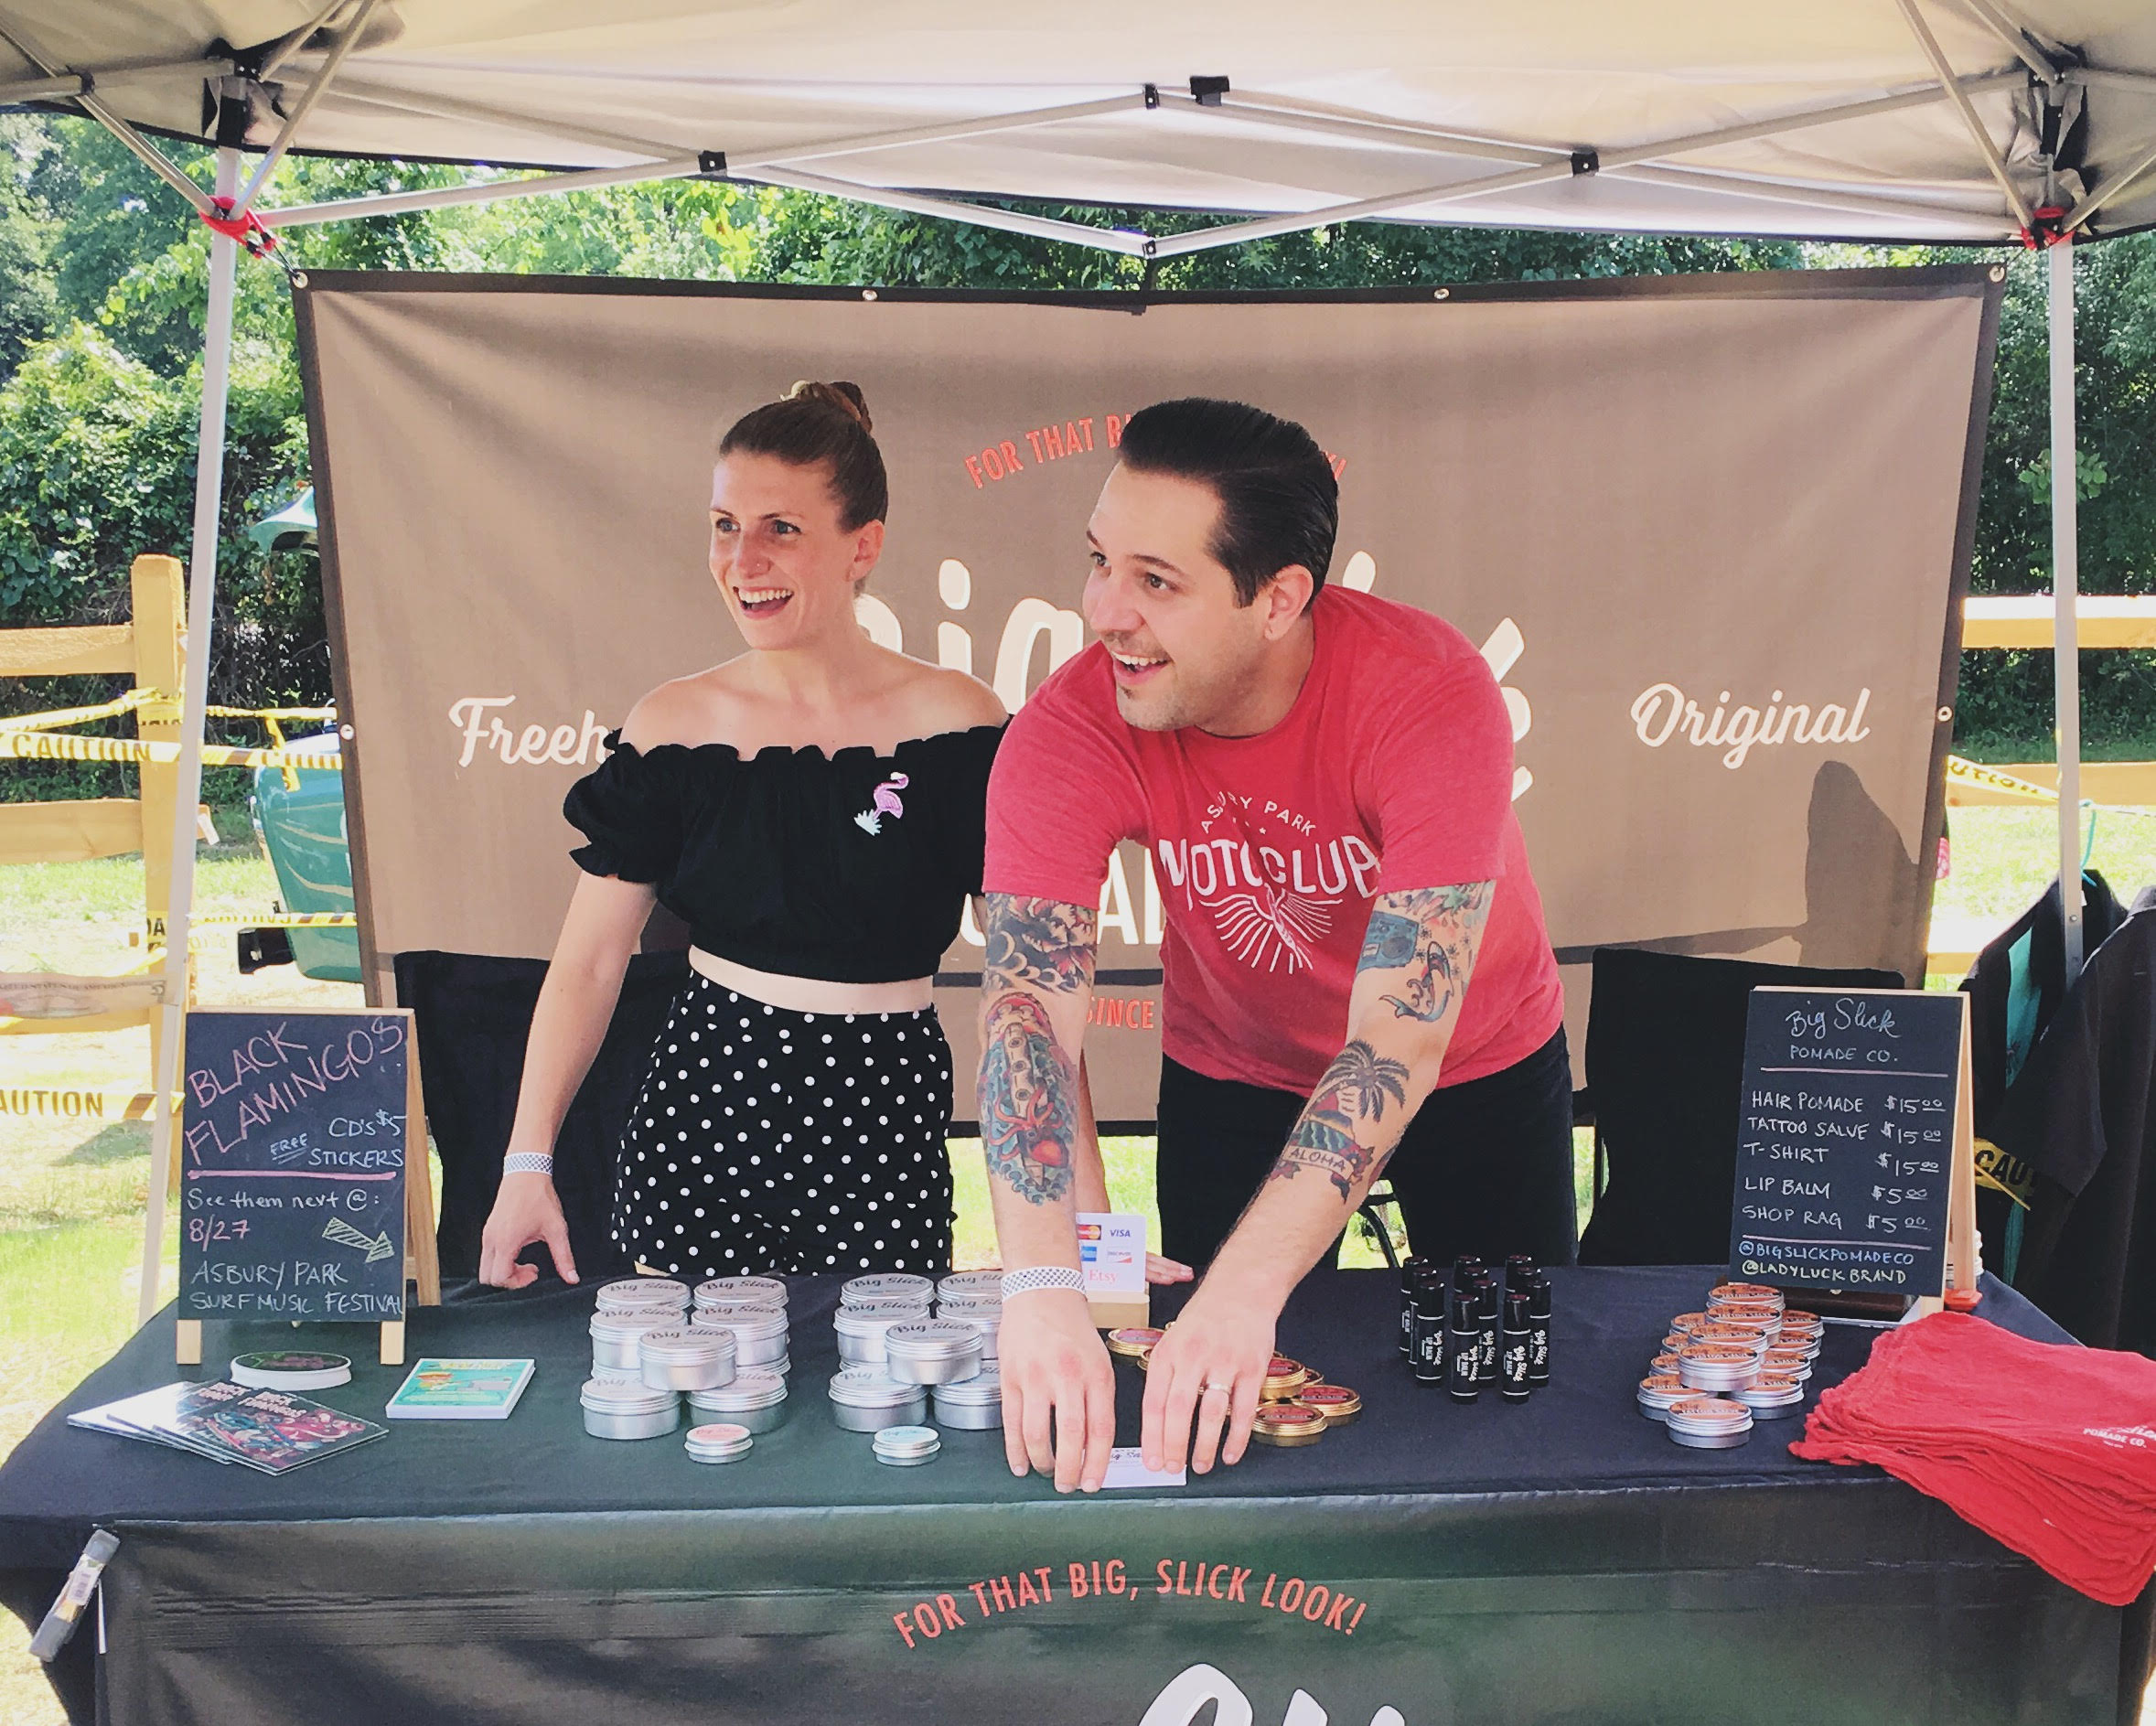 Big Slick Original Hair Pomade and Lady Luck Brand products are hand made small batches by husband and wife Vincent Minervino and Magdalena O'Connell, founders of the Asbury Park Surf Music Festival.